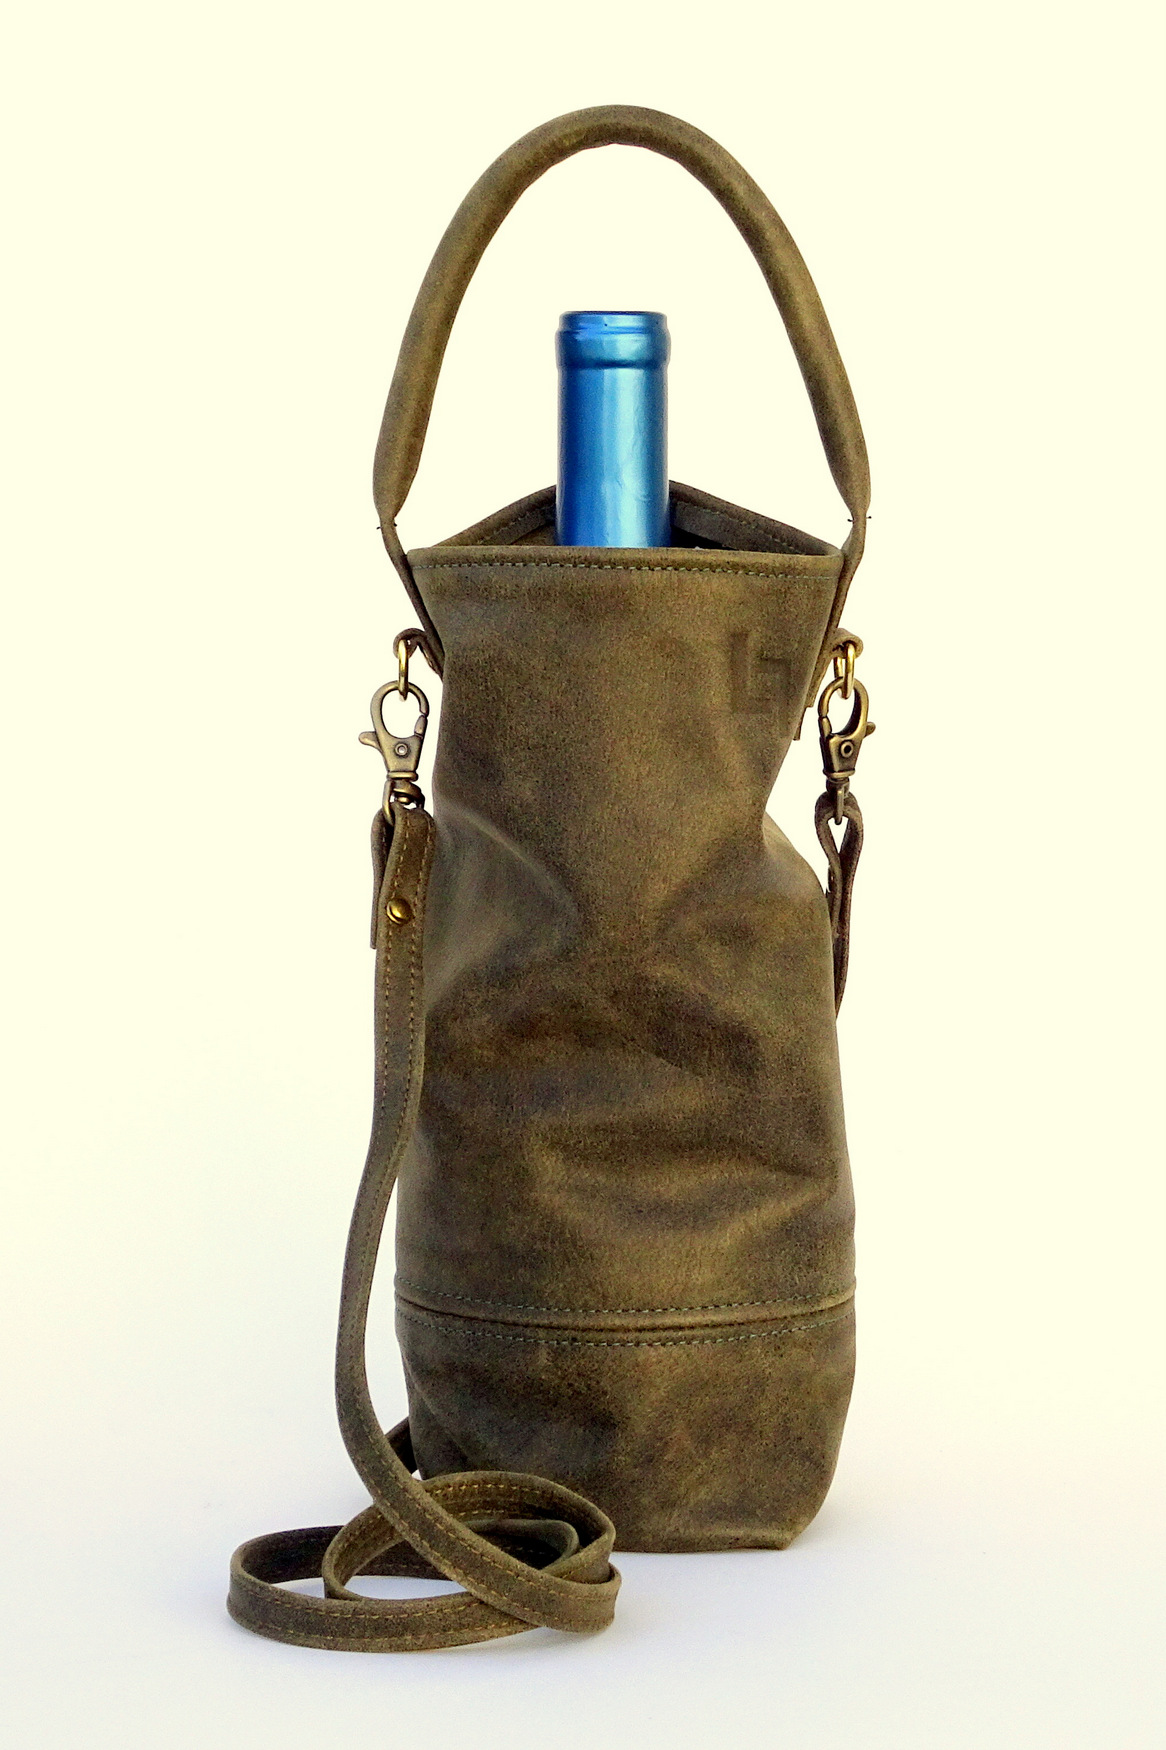 1-Handcrafted Leather Wine Tote Bags, LaPlace Leather, Tennessee.JPG